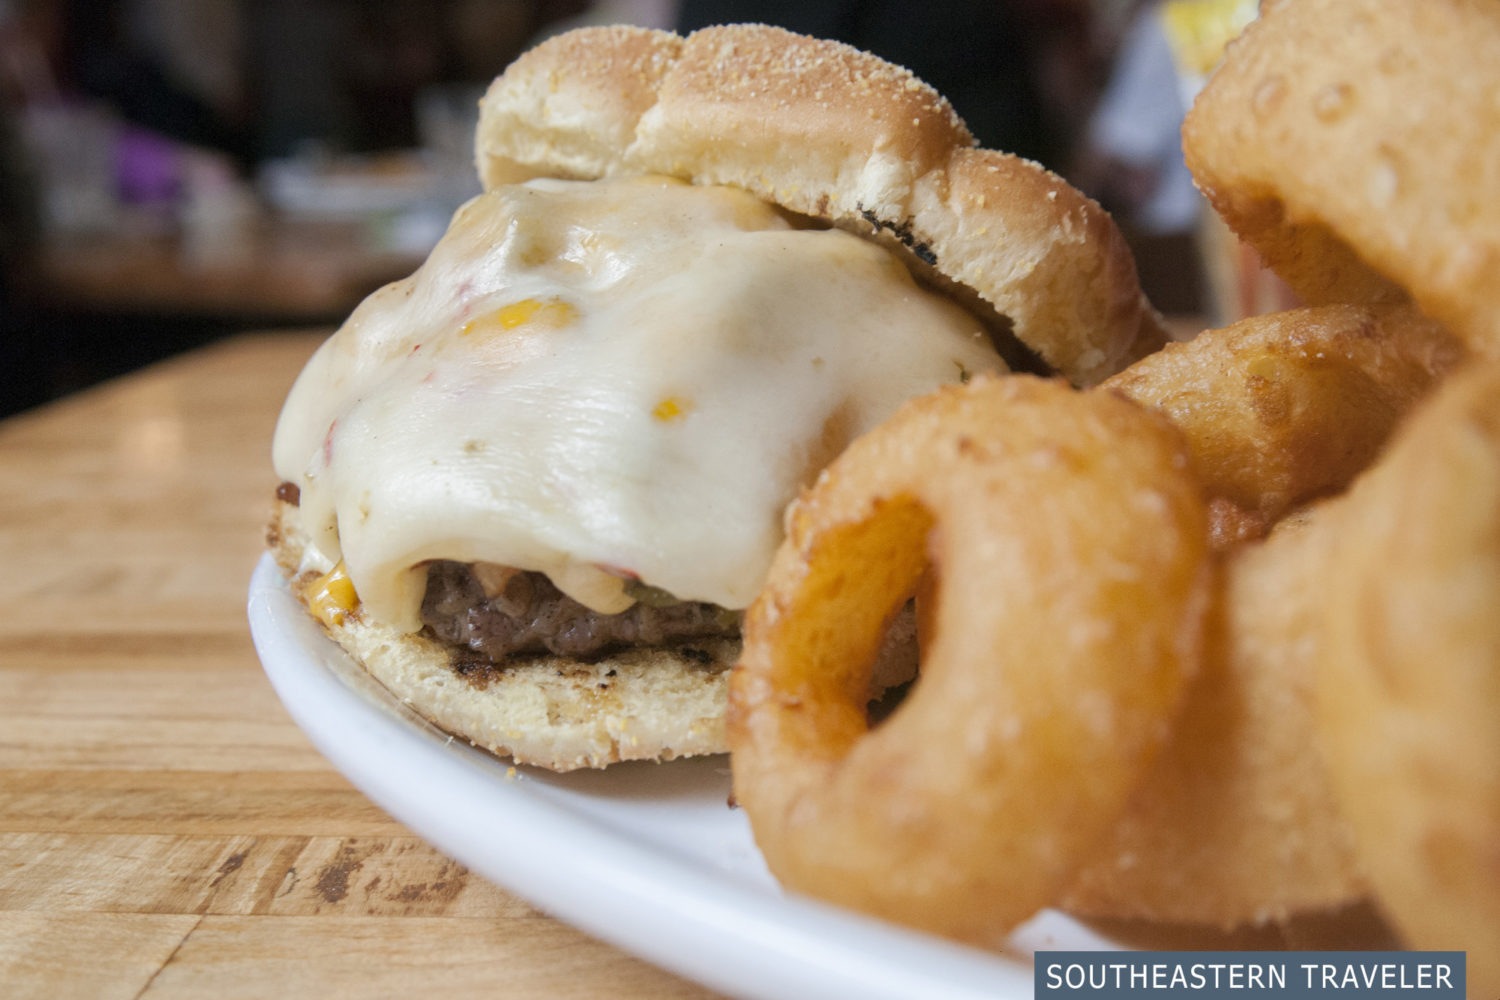 A cheese-smothered burger from The Stables Grill in Tupelo, Mississippi